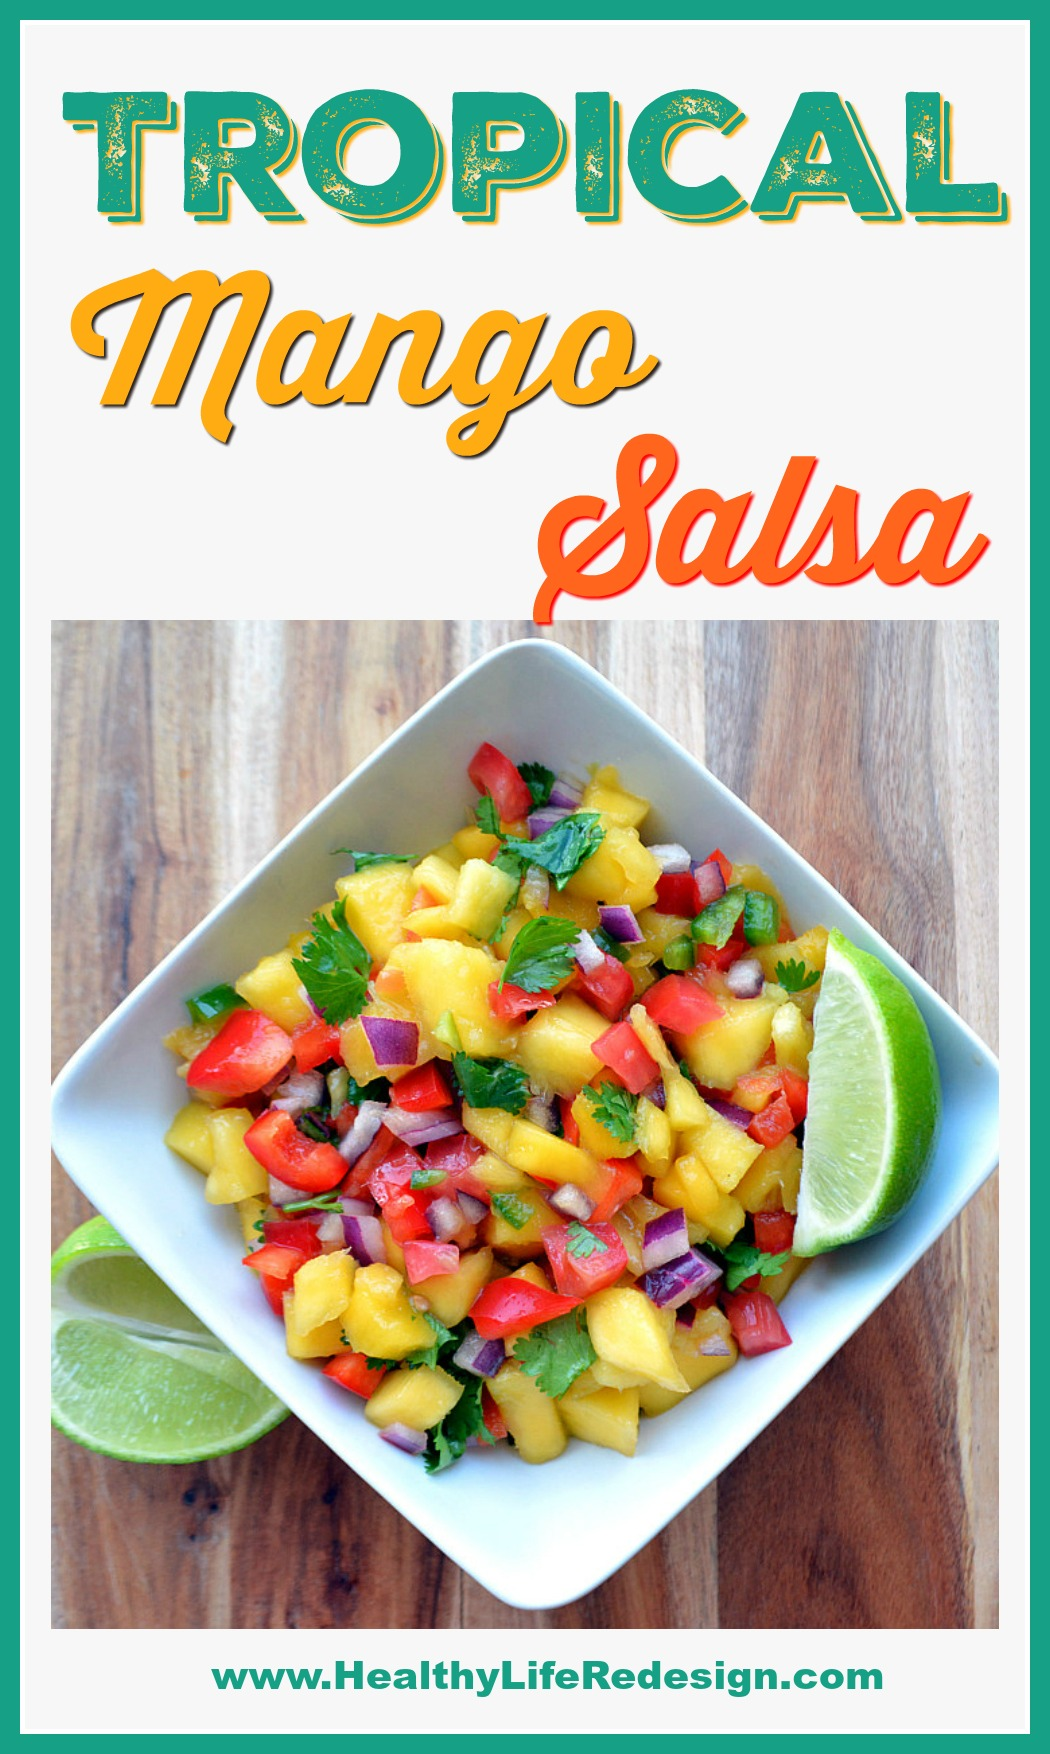 Sweet and savoury Tropical Mango Salsa is perfect on fajitas, burgers, grilled chicken breasts, salads or as a simple and delicious dip for tortilla chips!